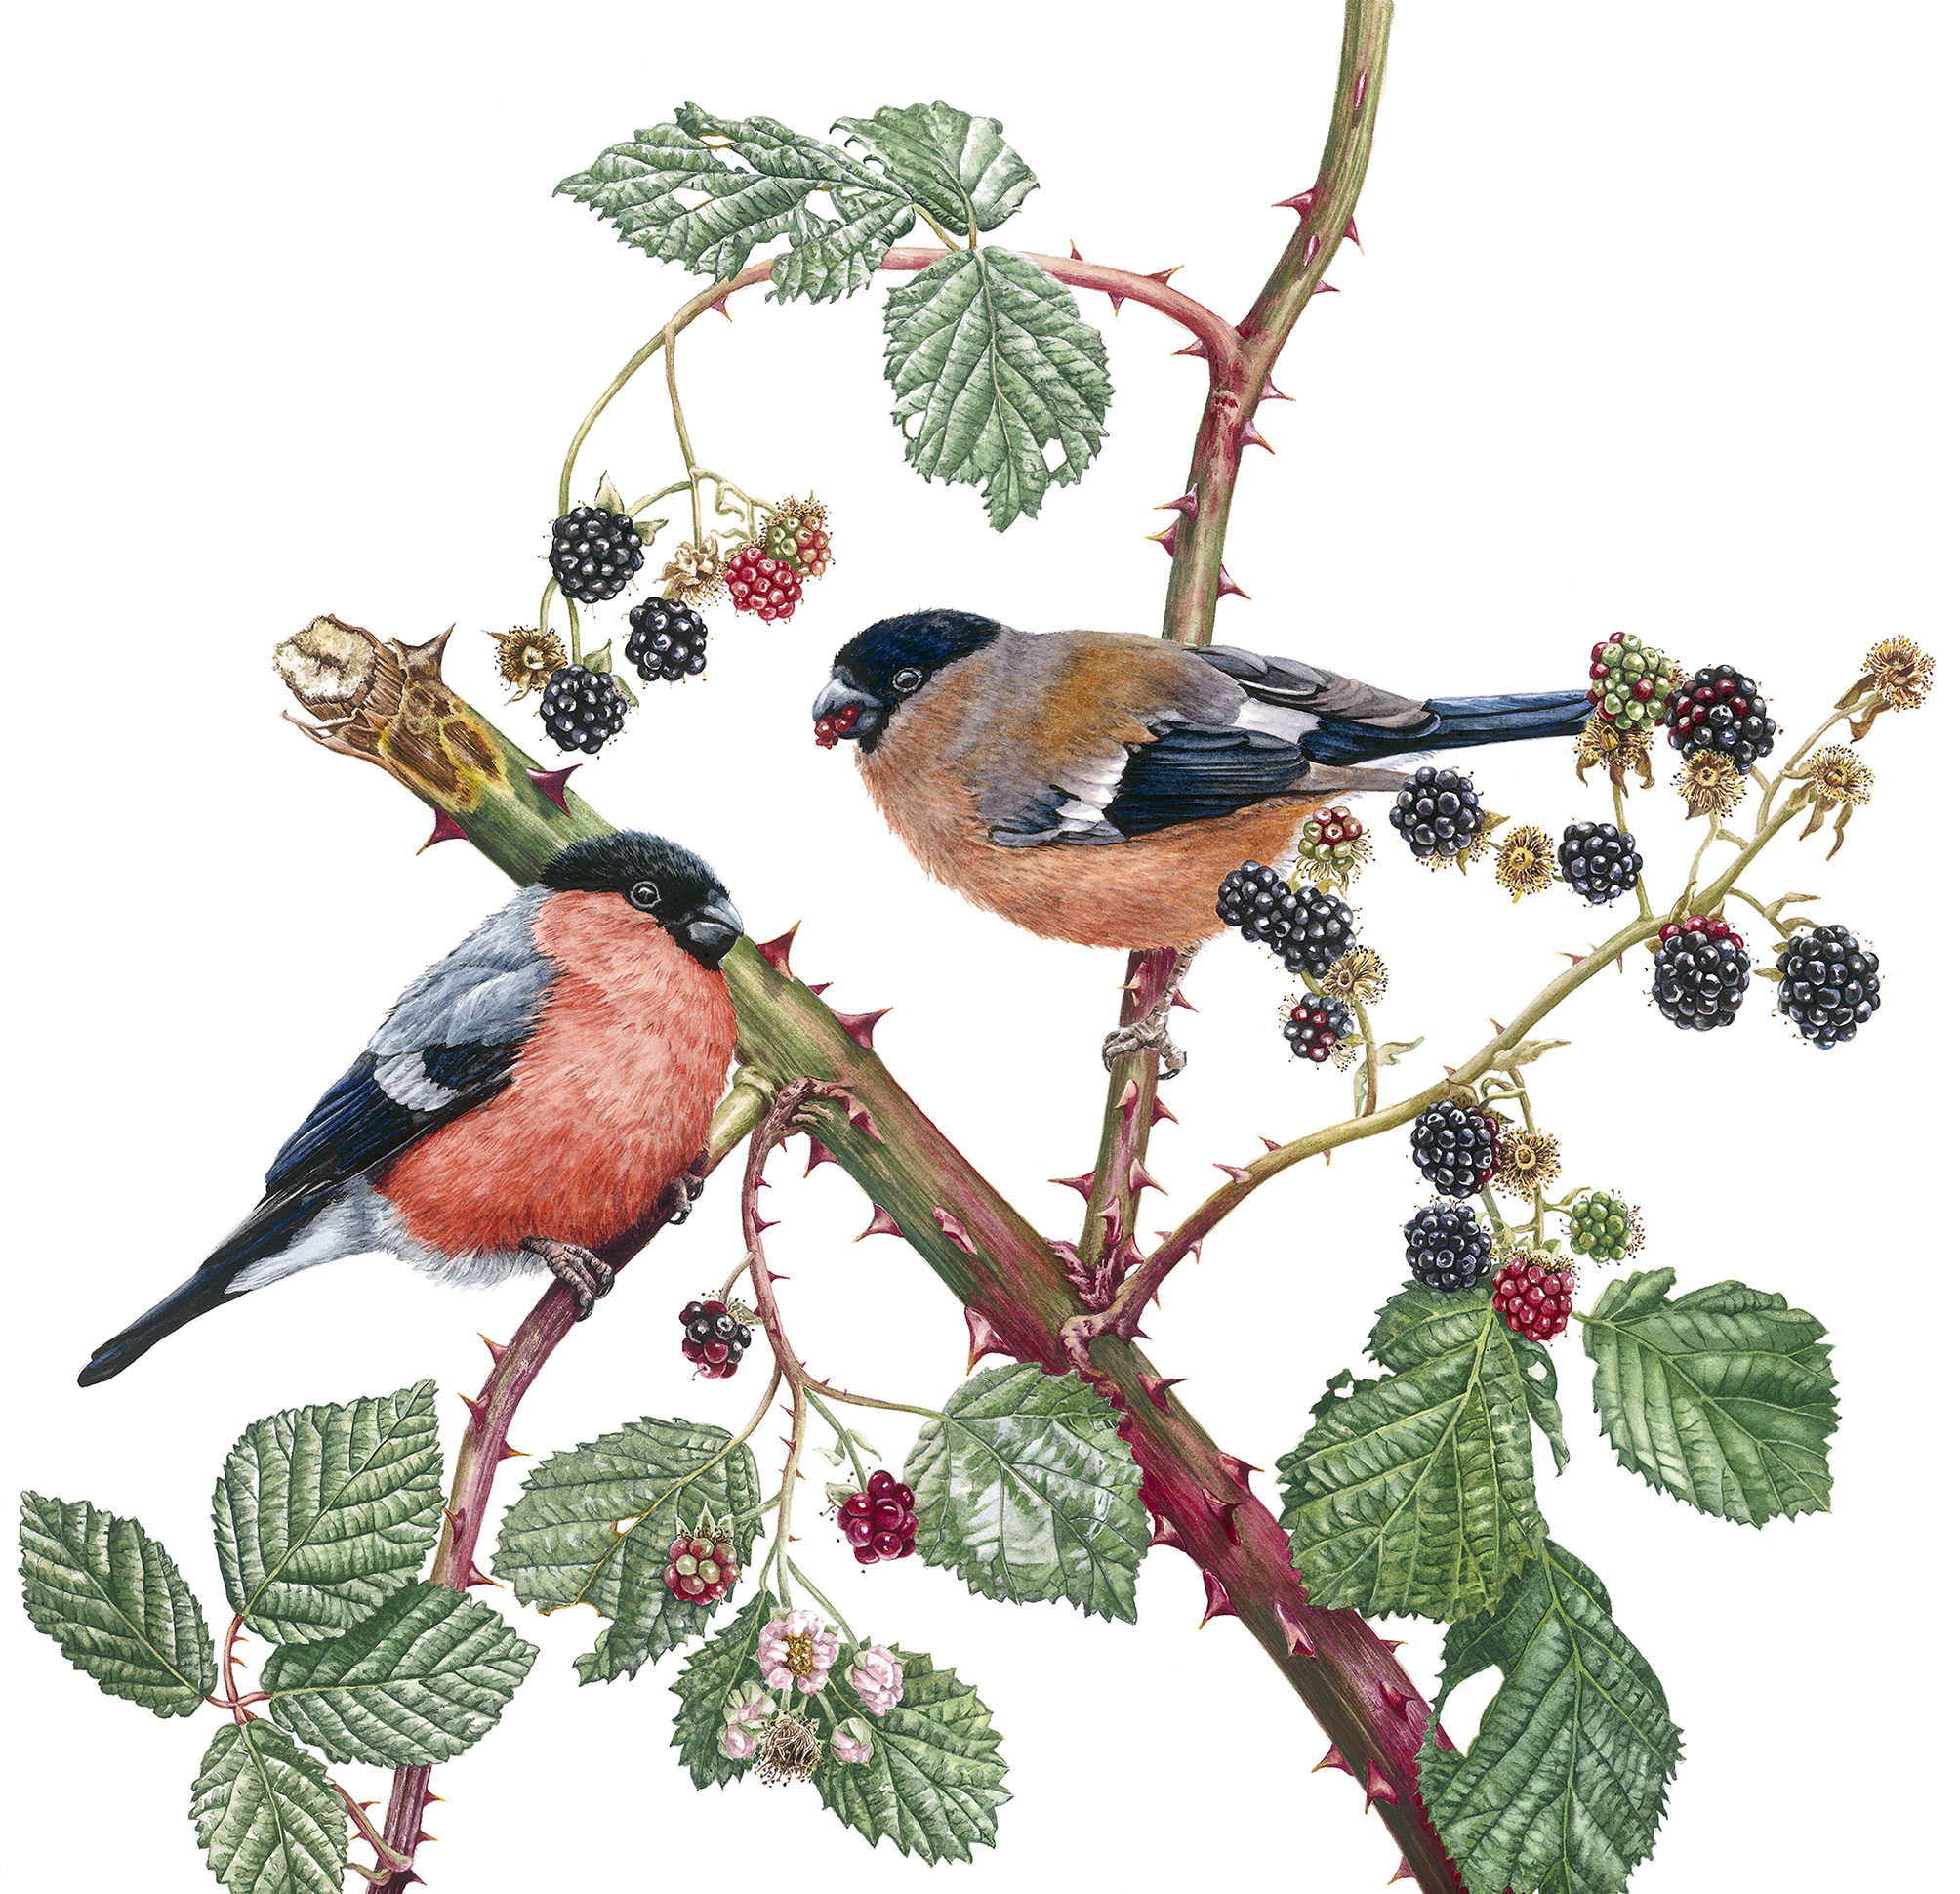 Zoe Norman, Bullfinches and Blackberries, Watercolour, 36cm x 41cm x 0.1,  http://www.zoeelizabethnorman.com